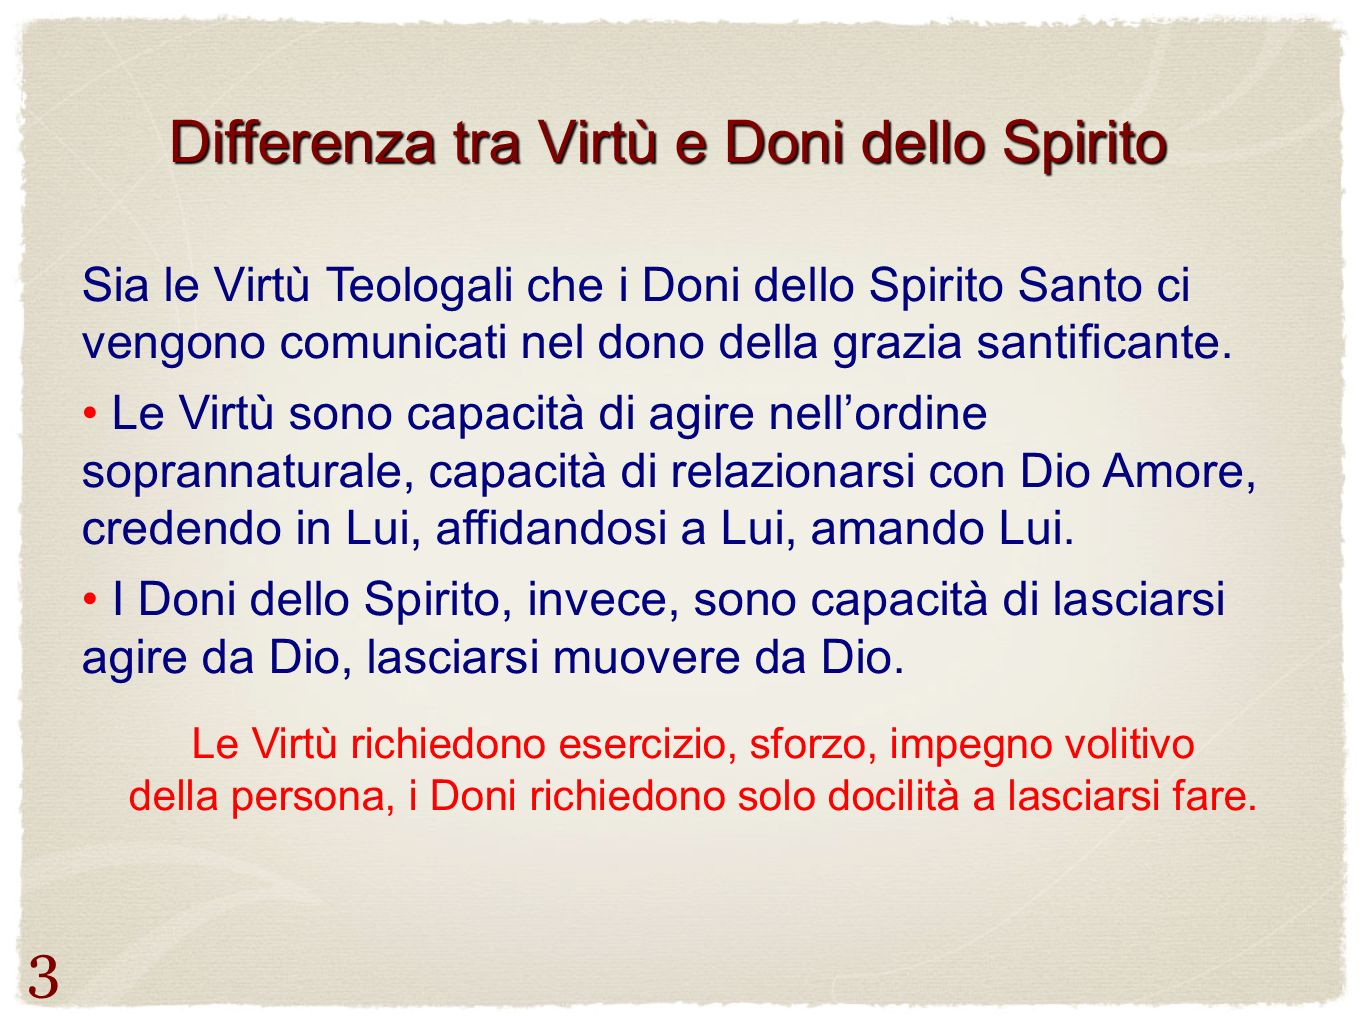 Differenza tra Virtù e Doni dello Spirito